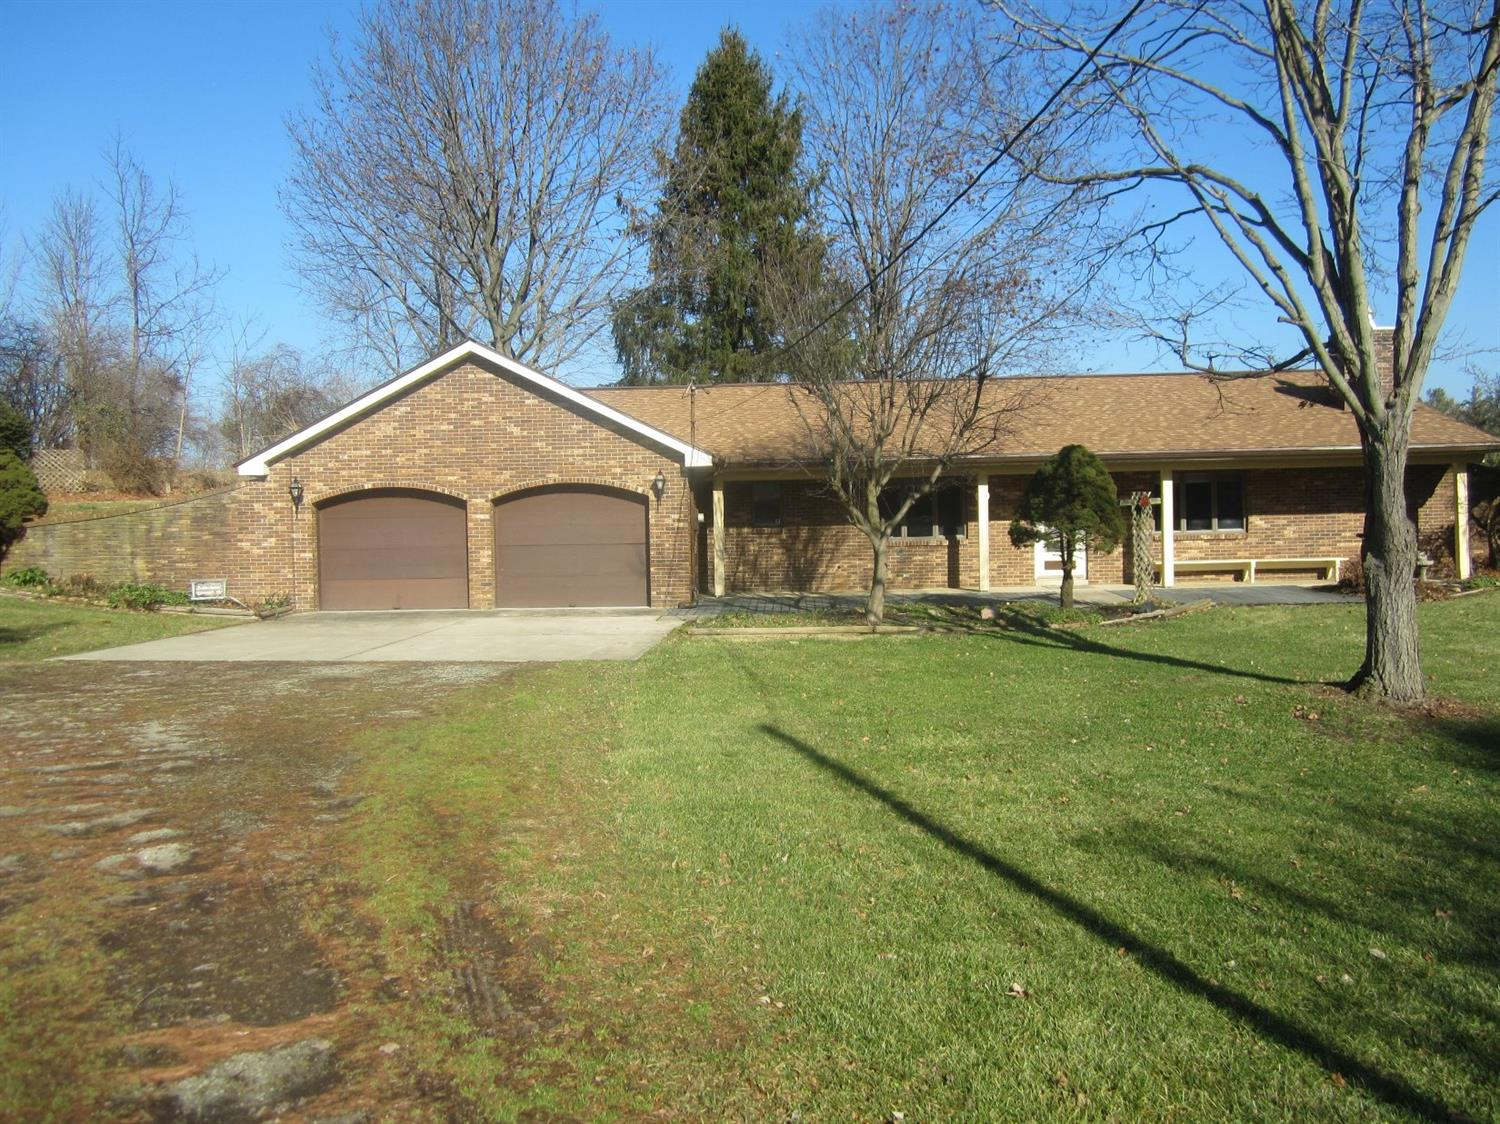 Property for sale at 4286 Pekin Road, Wayne Twp,  OH 45068